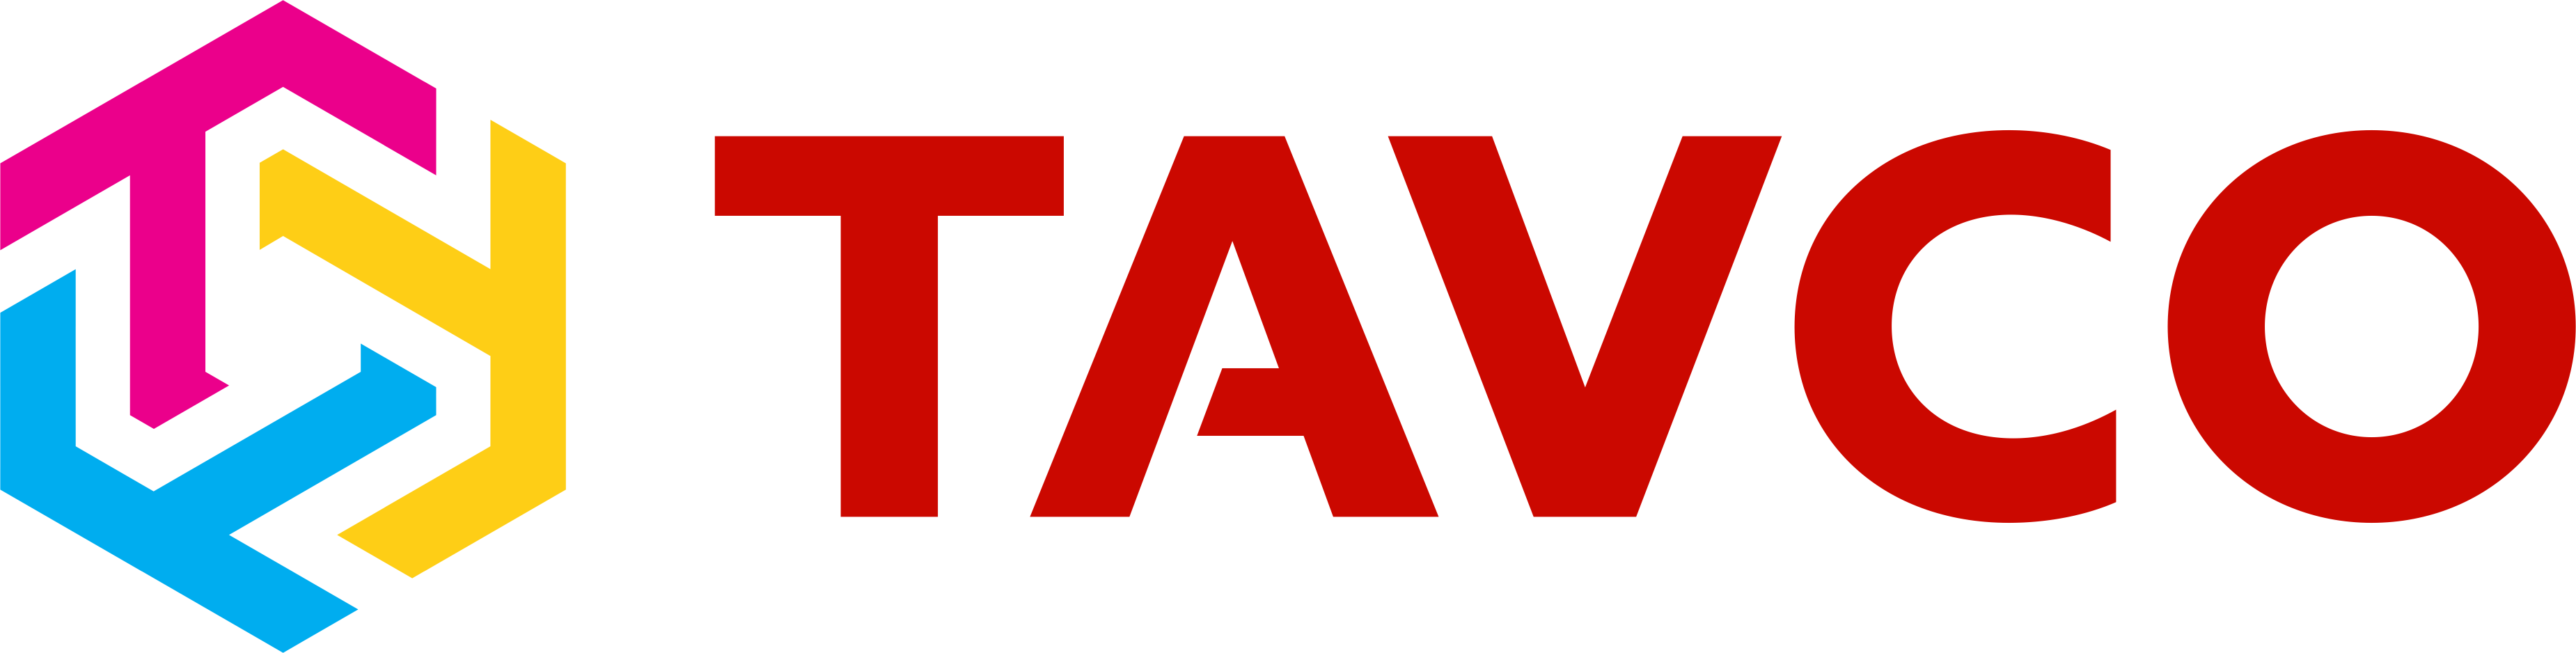 TAVCO_NO OUTLINE_RGB